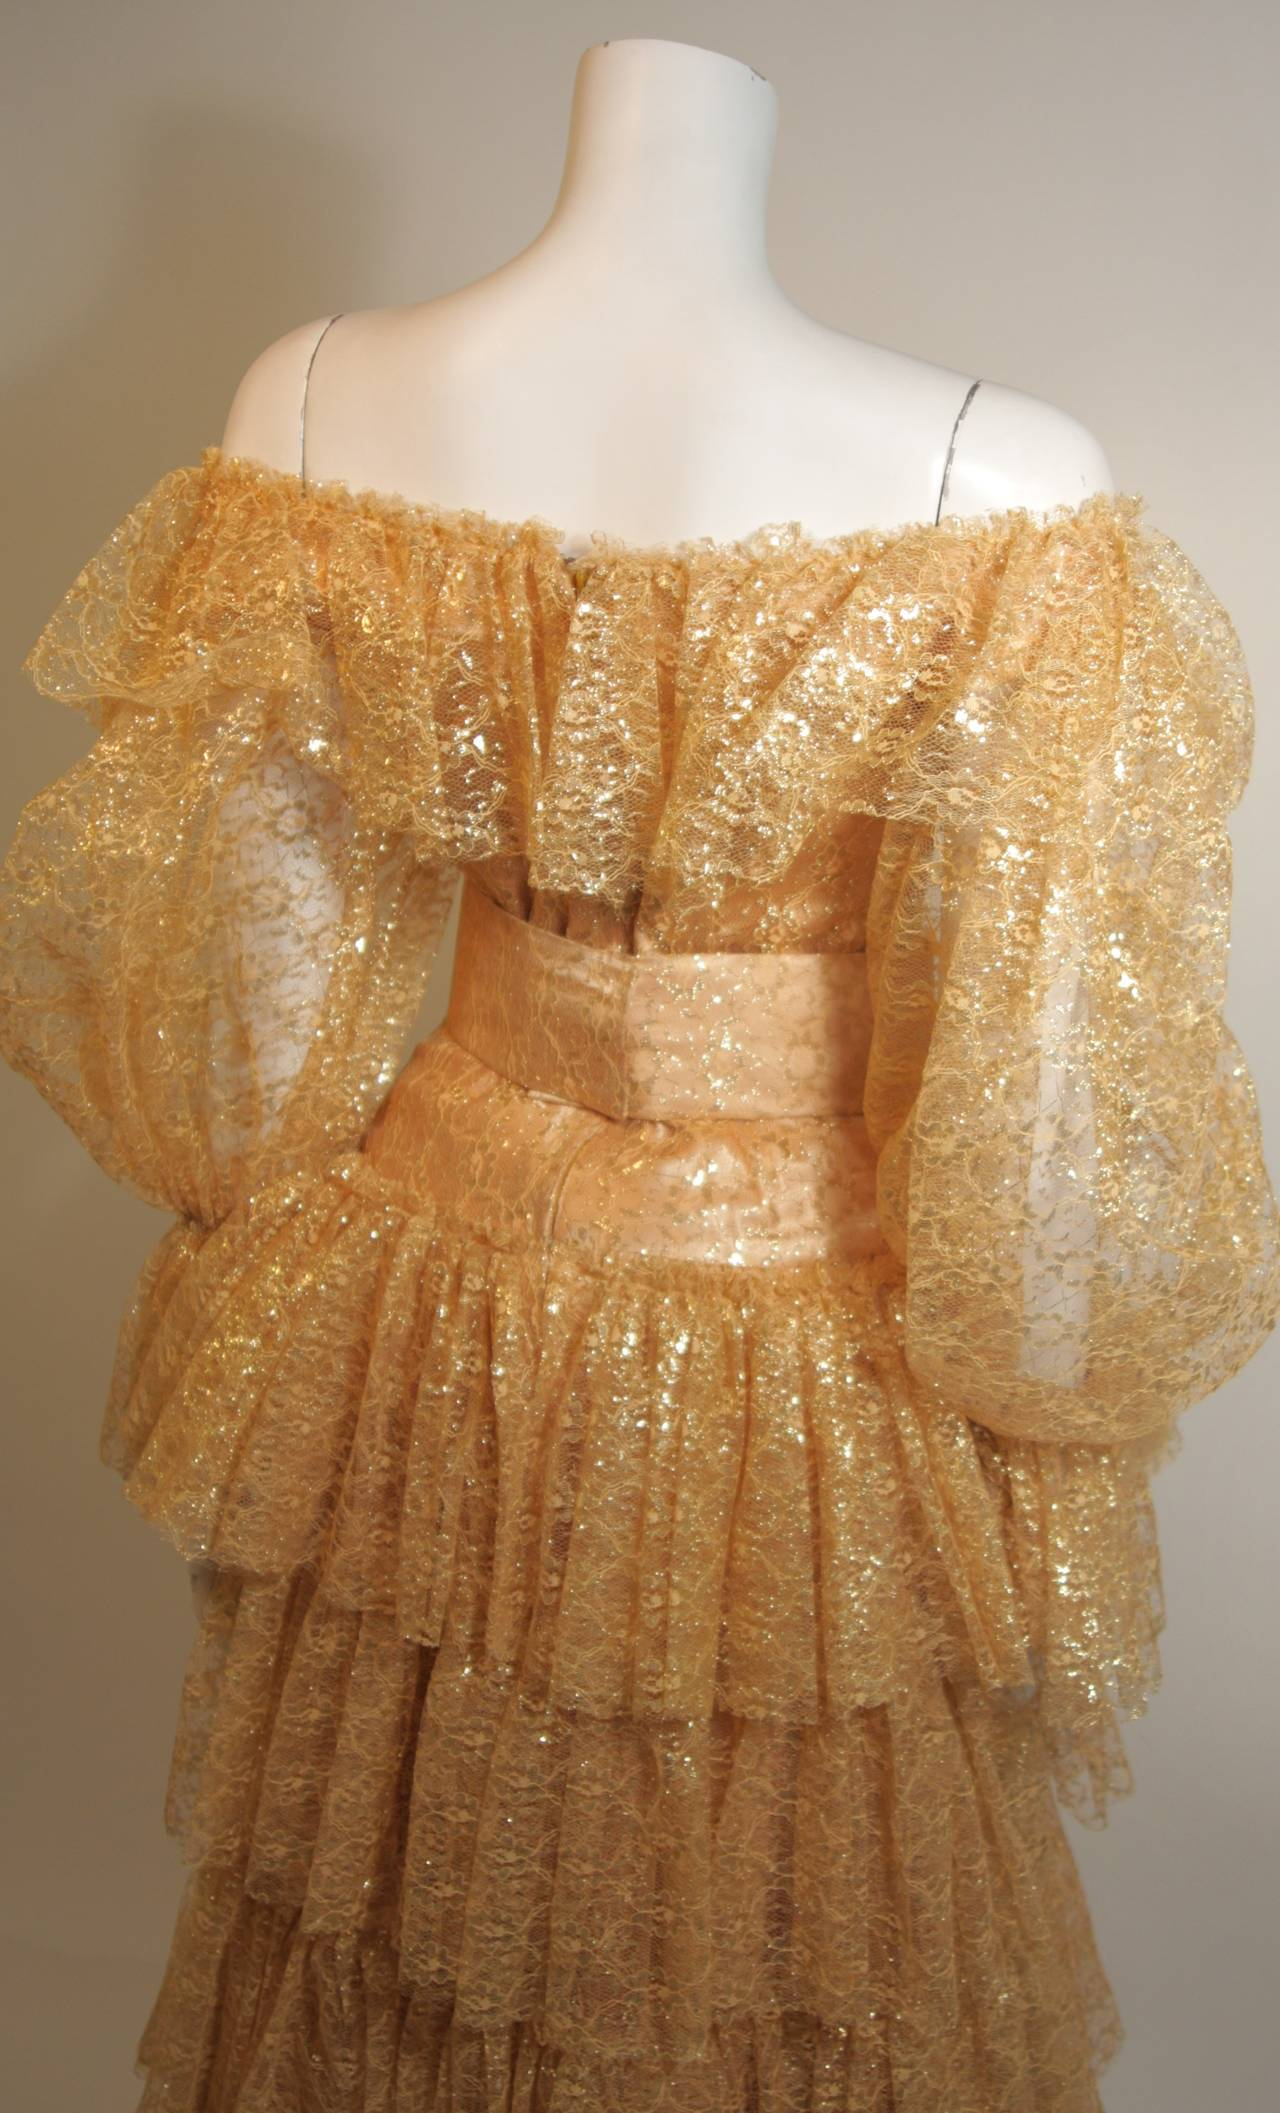 Attributed to Travilla Gold Tiered Lace Ball Gown with sheer lace sleeves size 4 7